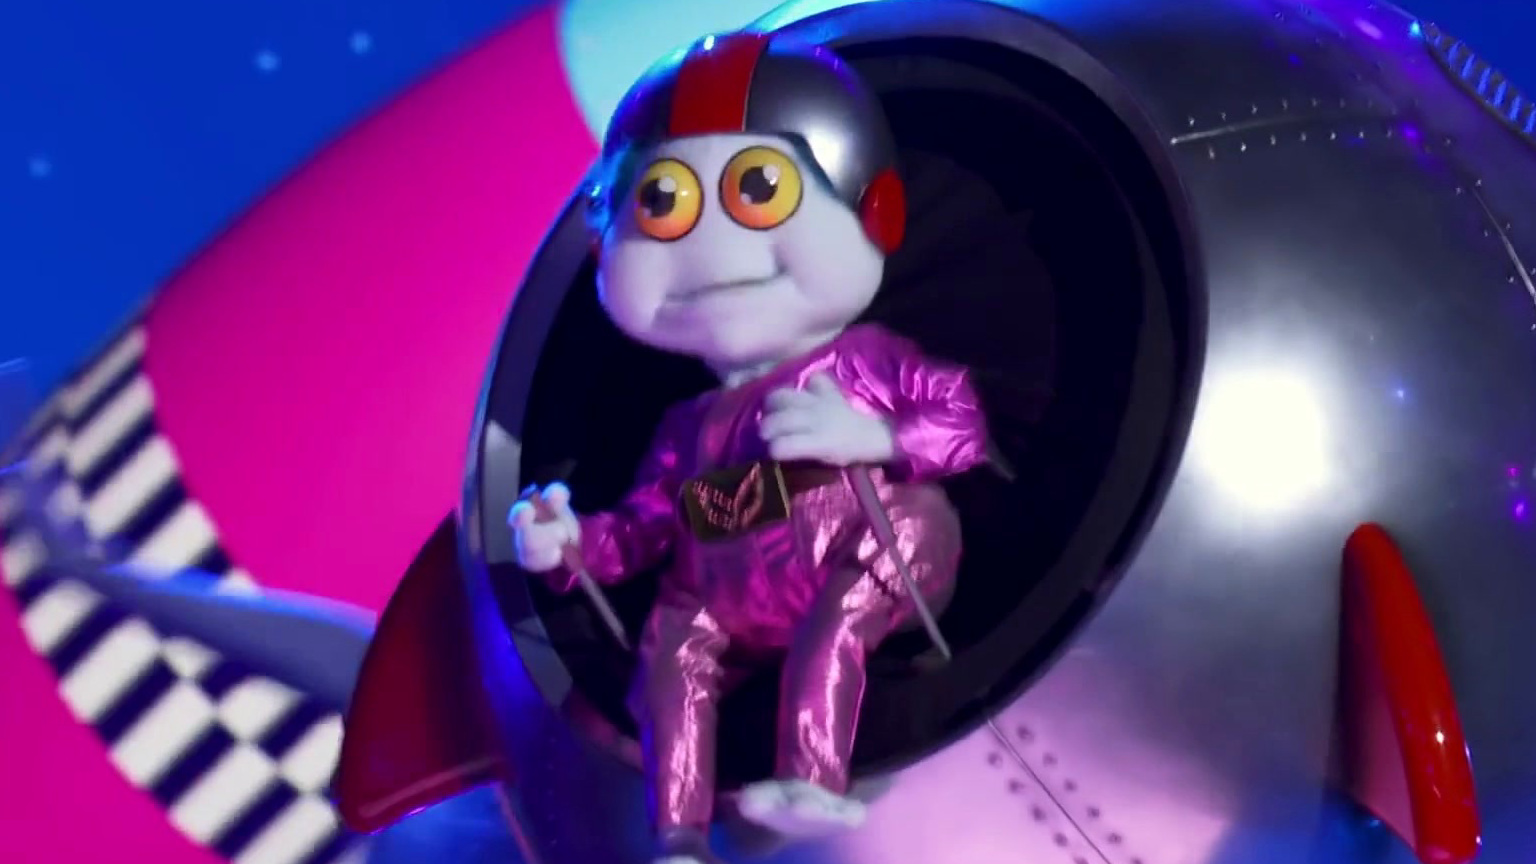 The Masked Singer: The Baby Alien's First Interview Without The Mask